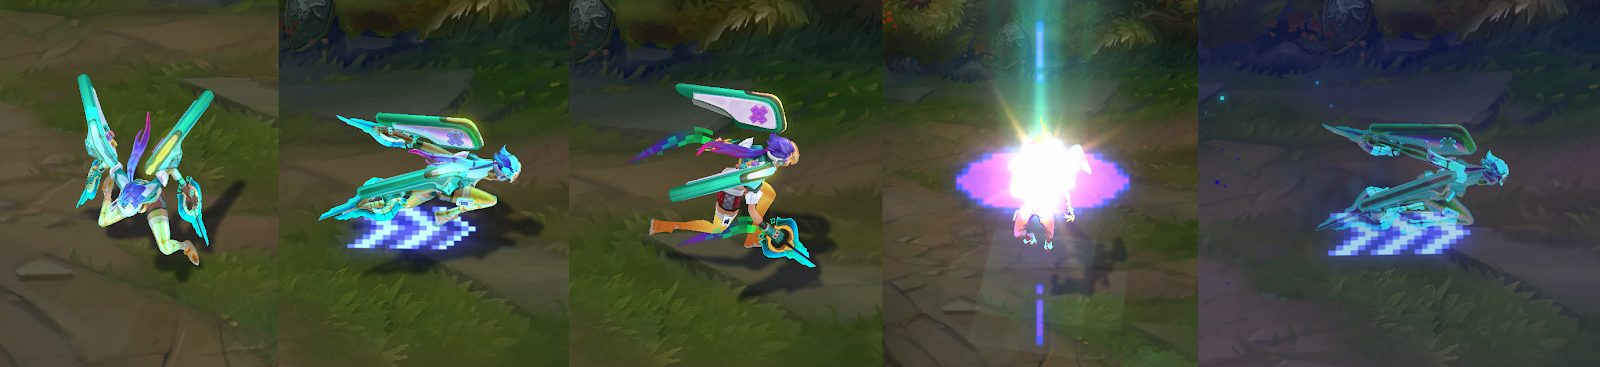 arcade kai'sa animation